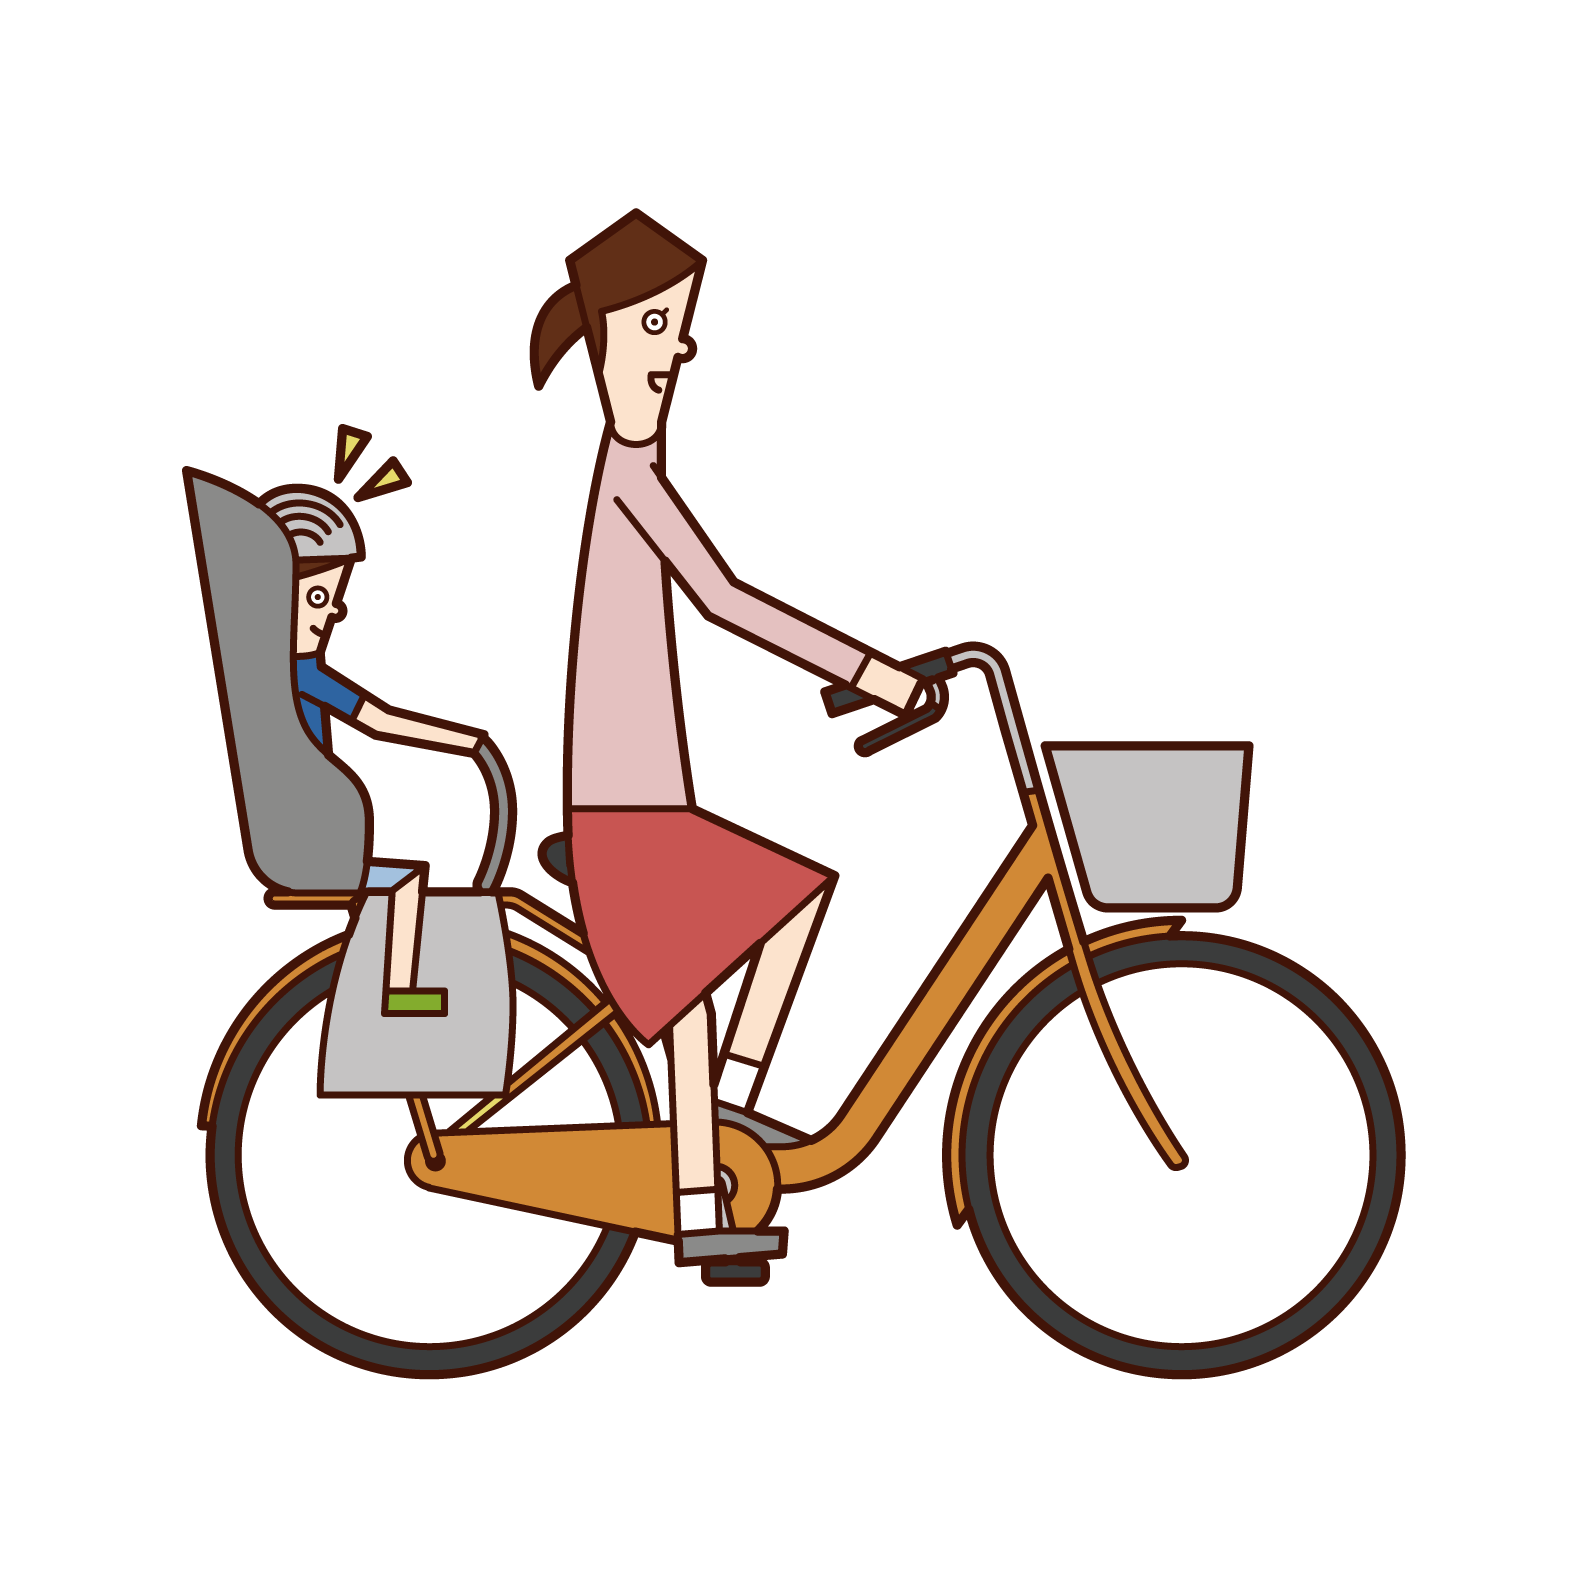 Illustration of a woman riding a bicycle with a child wearing a helmet